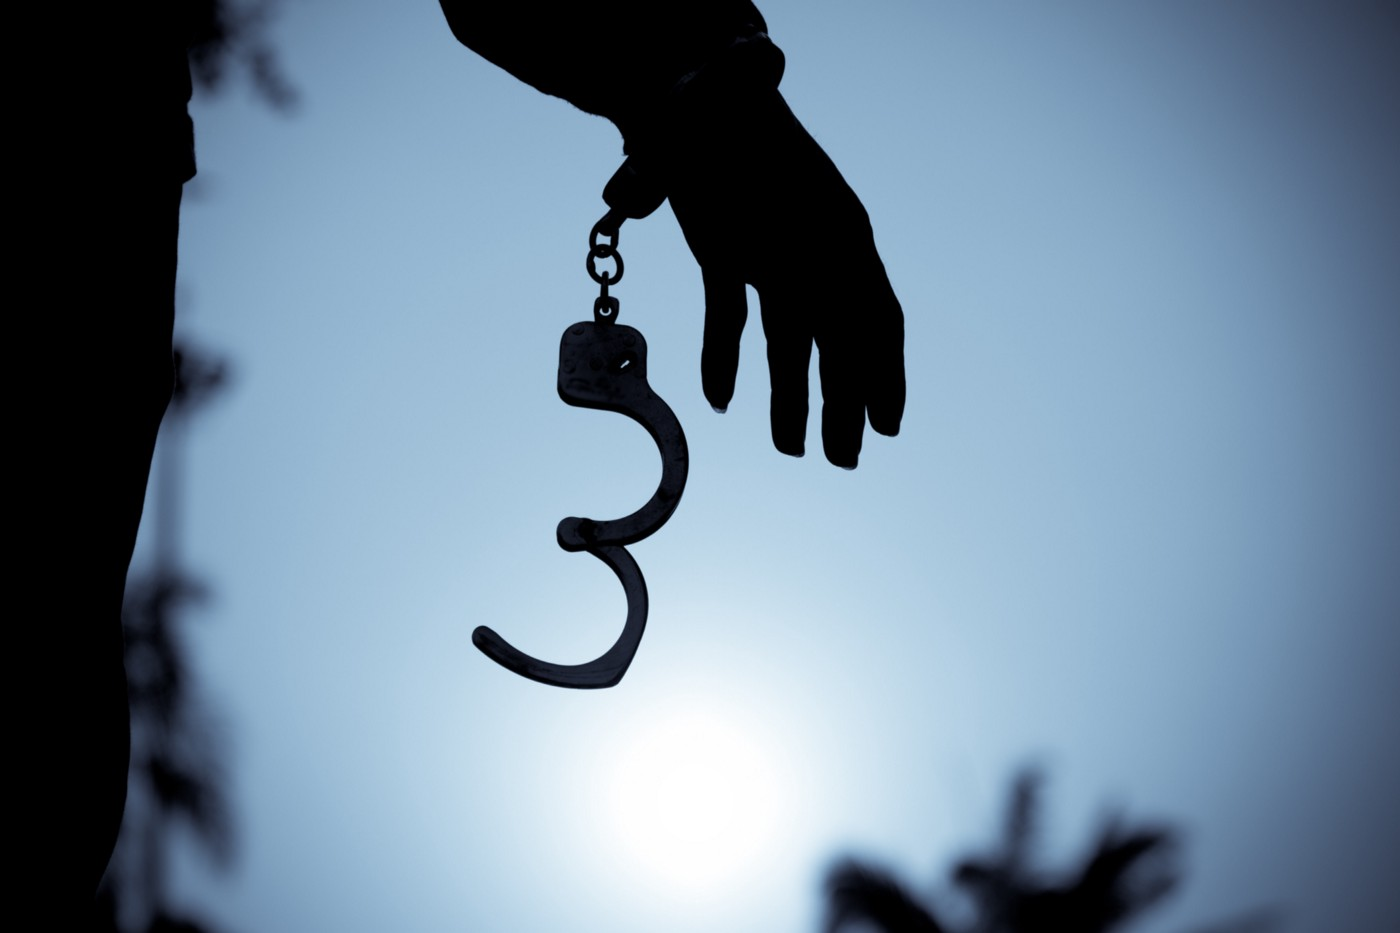 A photo of handcuffs being uncuffed on a person's hand.